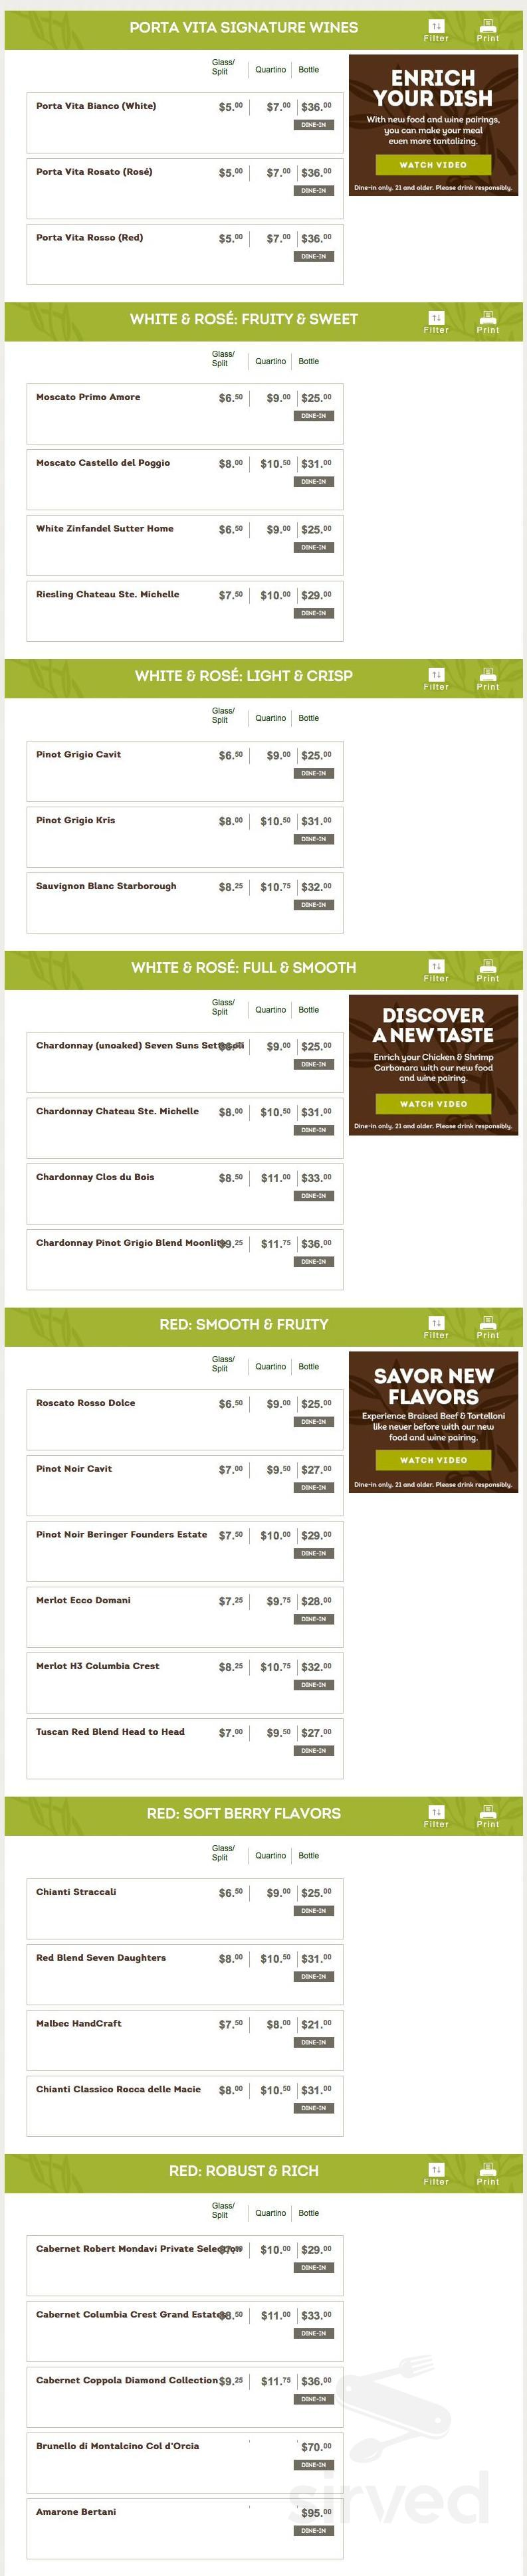 Olive Garden Italian Restaurant Menu In Salisbury Maryland